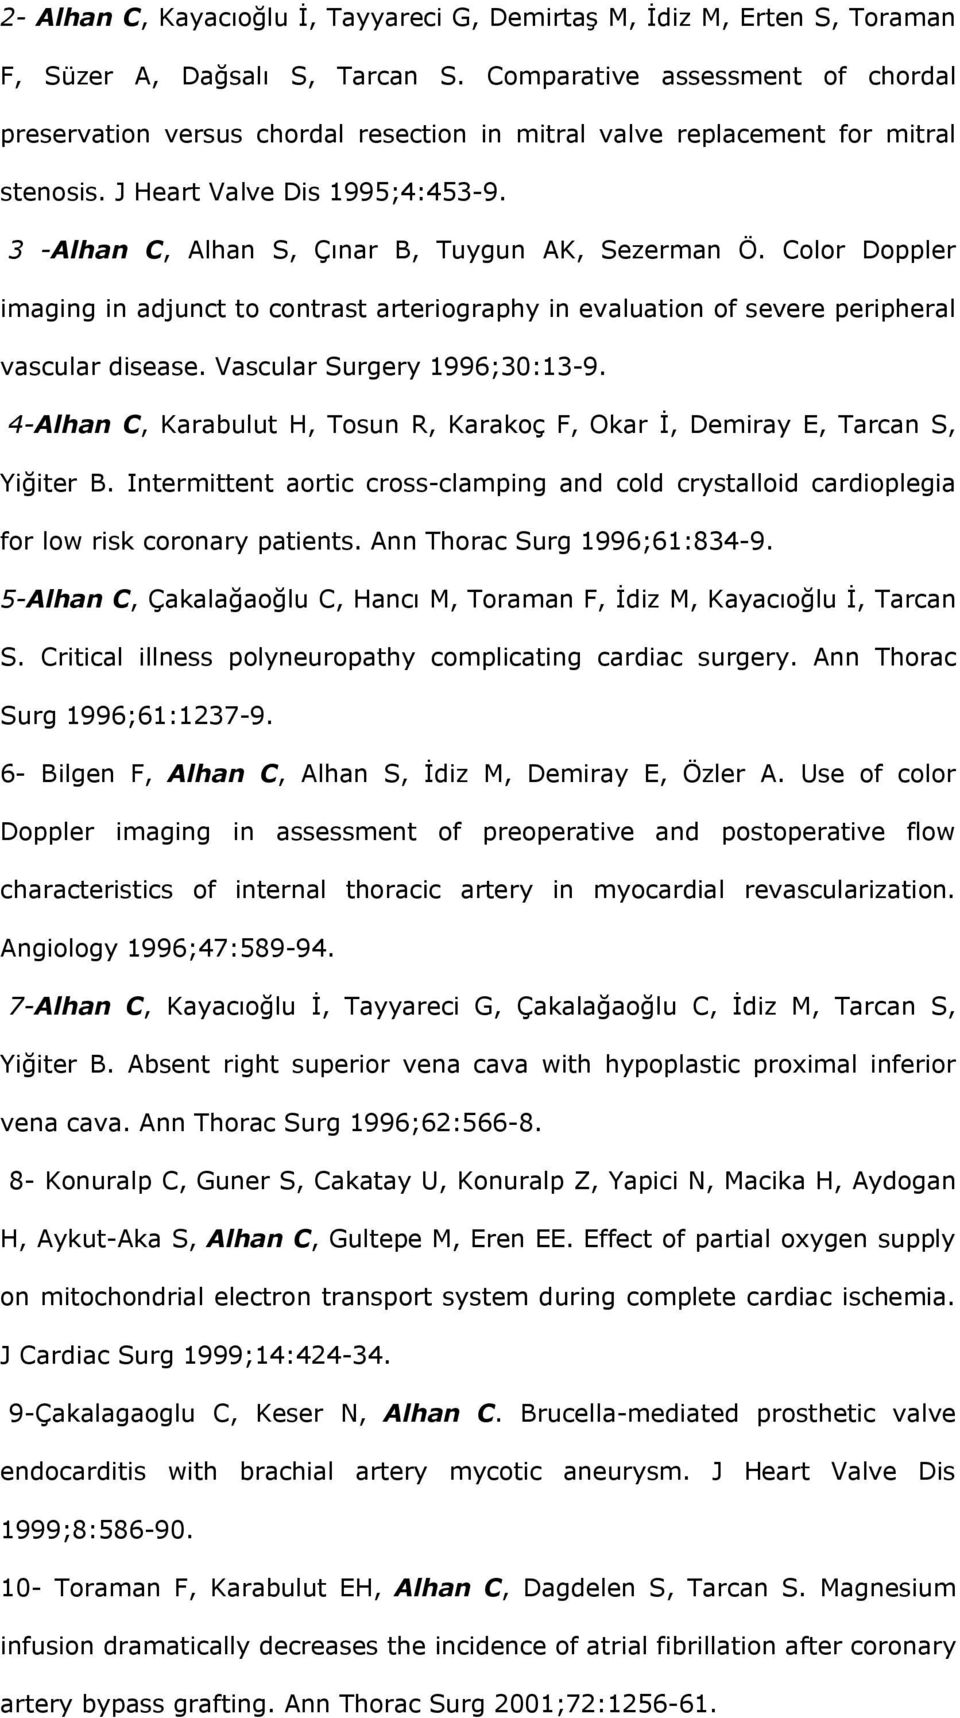 3 -Alhan C, Alhan S, Çınar B, Tuygun AK, Sezerman Ö. Color Doppler imaging in adjunct to contrast arteriography in evaluation of severe peripheral vascular disease. Vascular Surgery 1996;30:13-9.